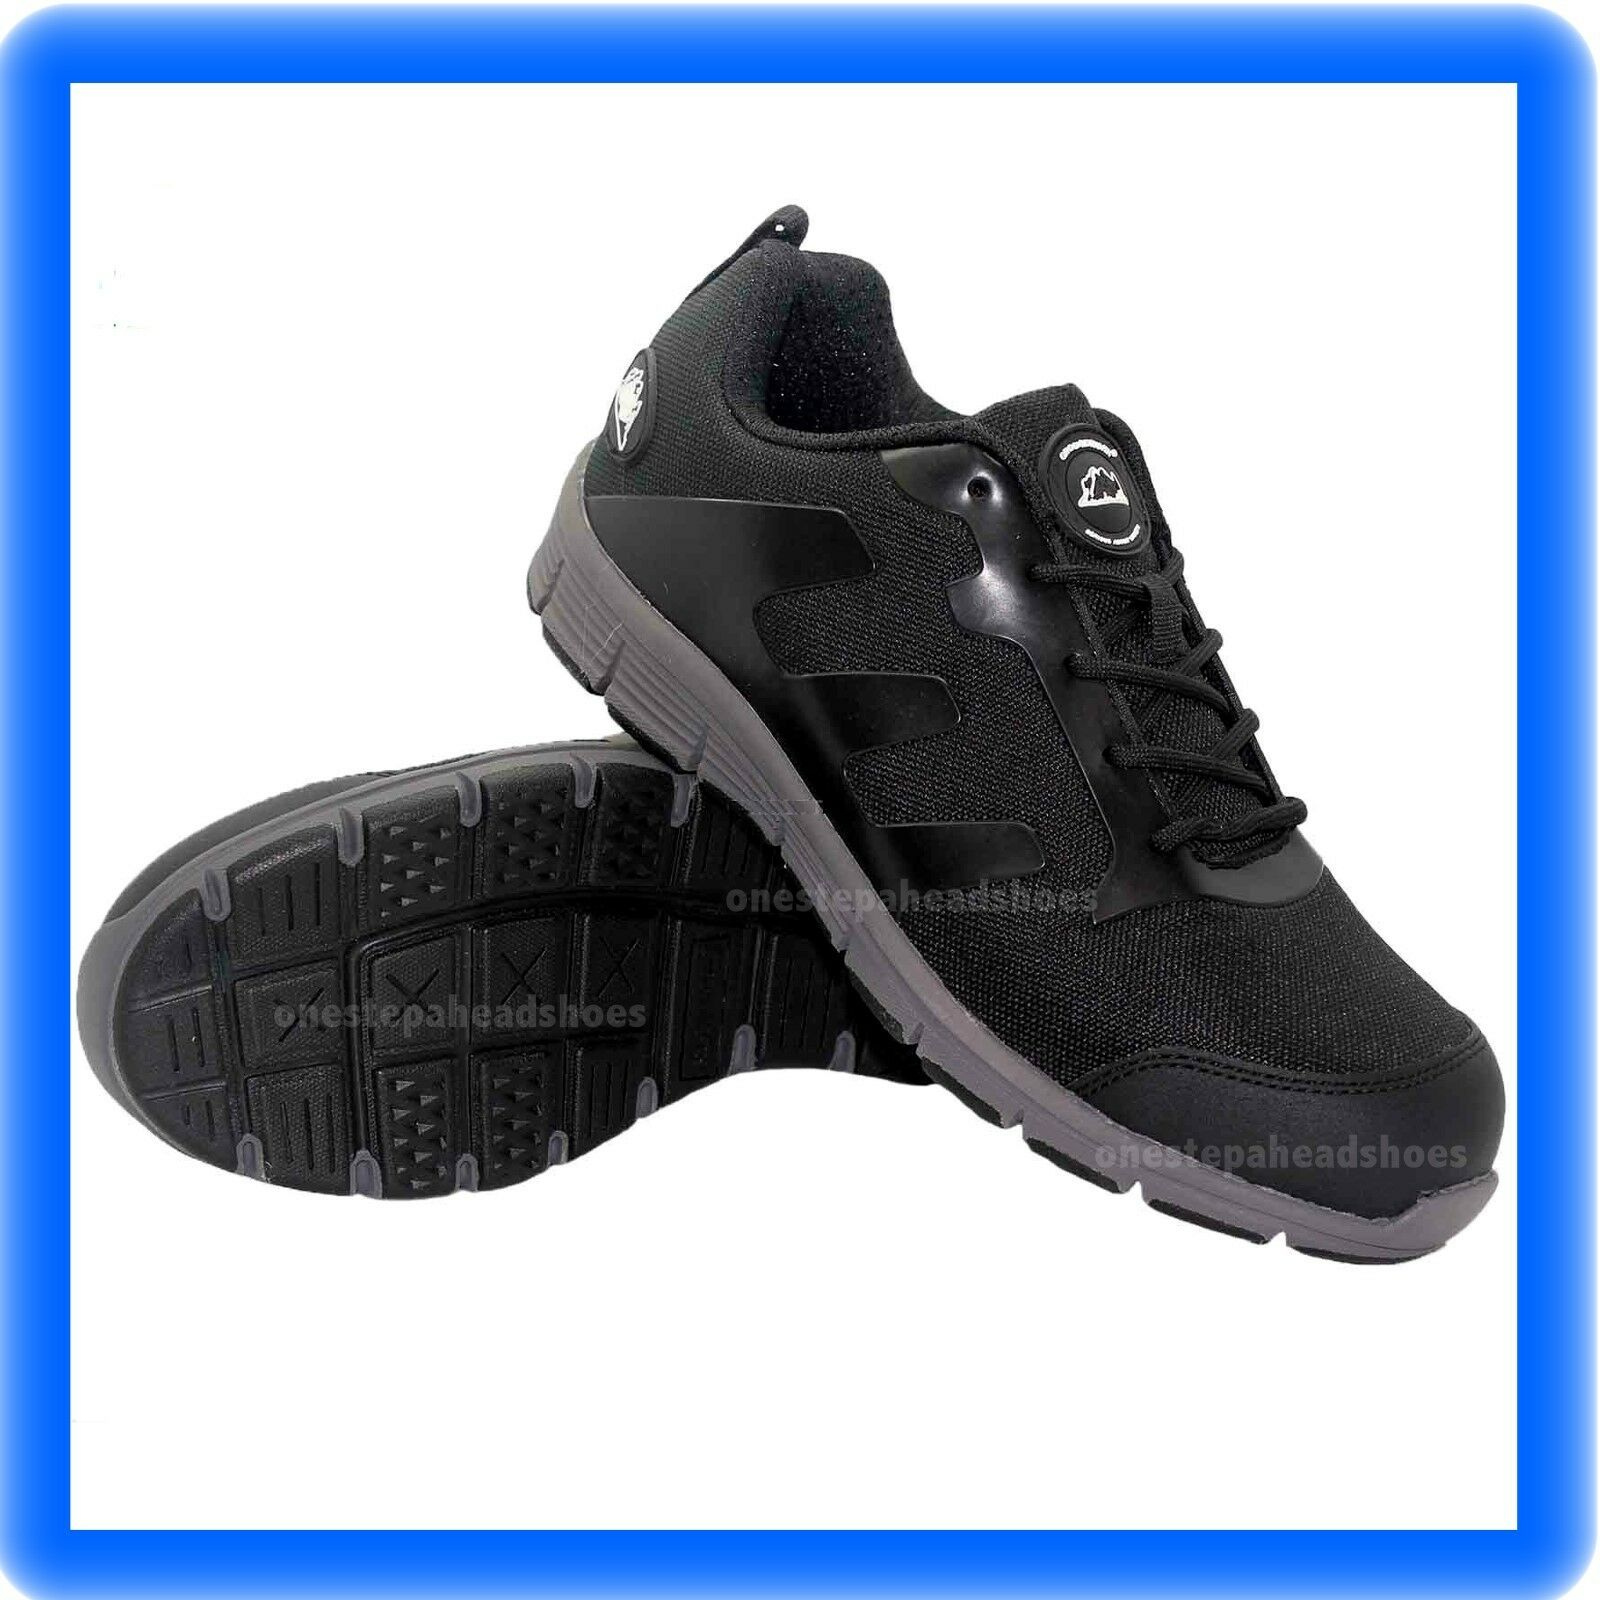 MENS  ULTRA LIGHTWEIGHT STEEL TOE CAP SAFETY TRAINER SHOES WORK SIZE UK 10 44